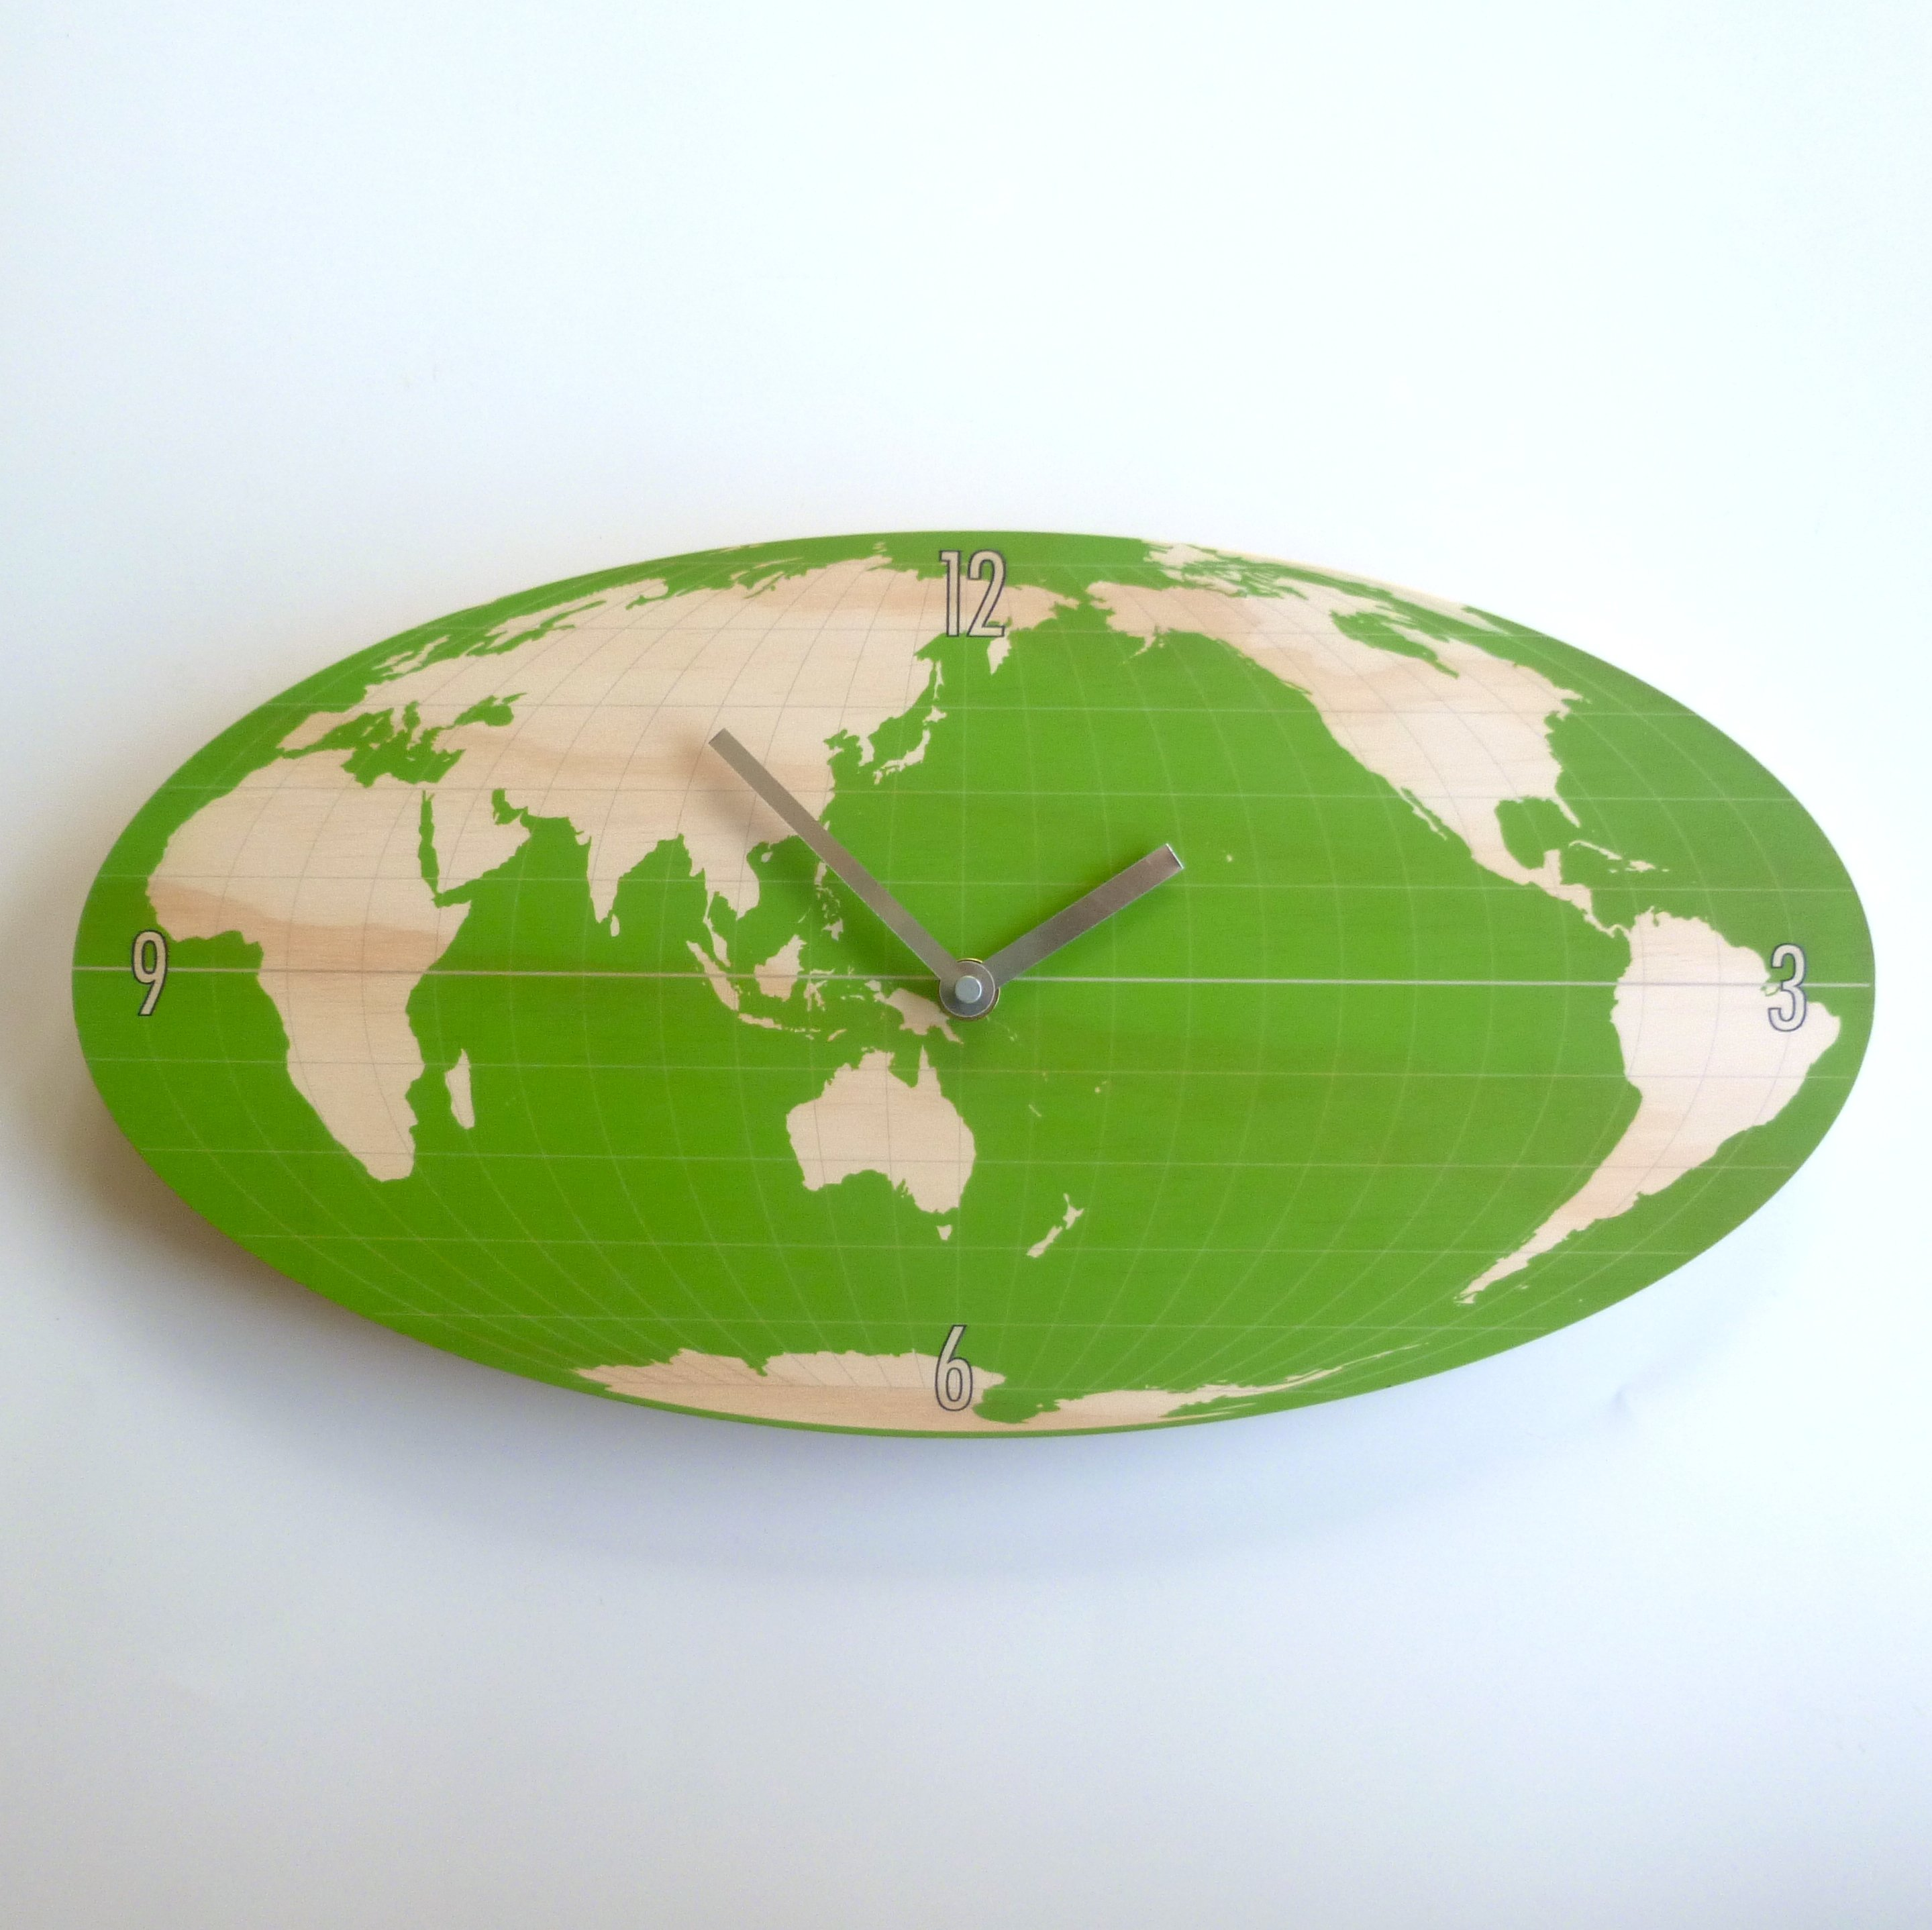 Green oval world map wall clock gumiabroncs Gallery